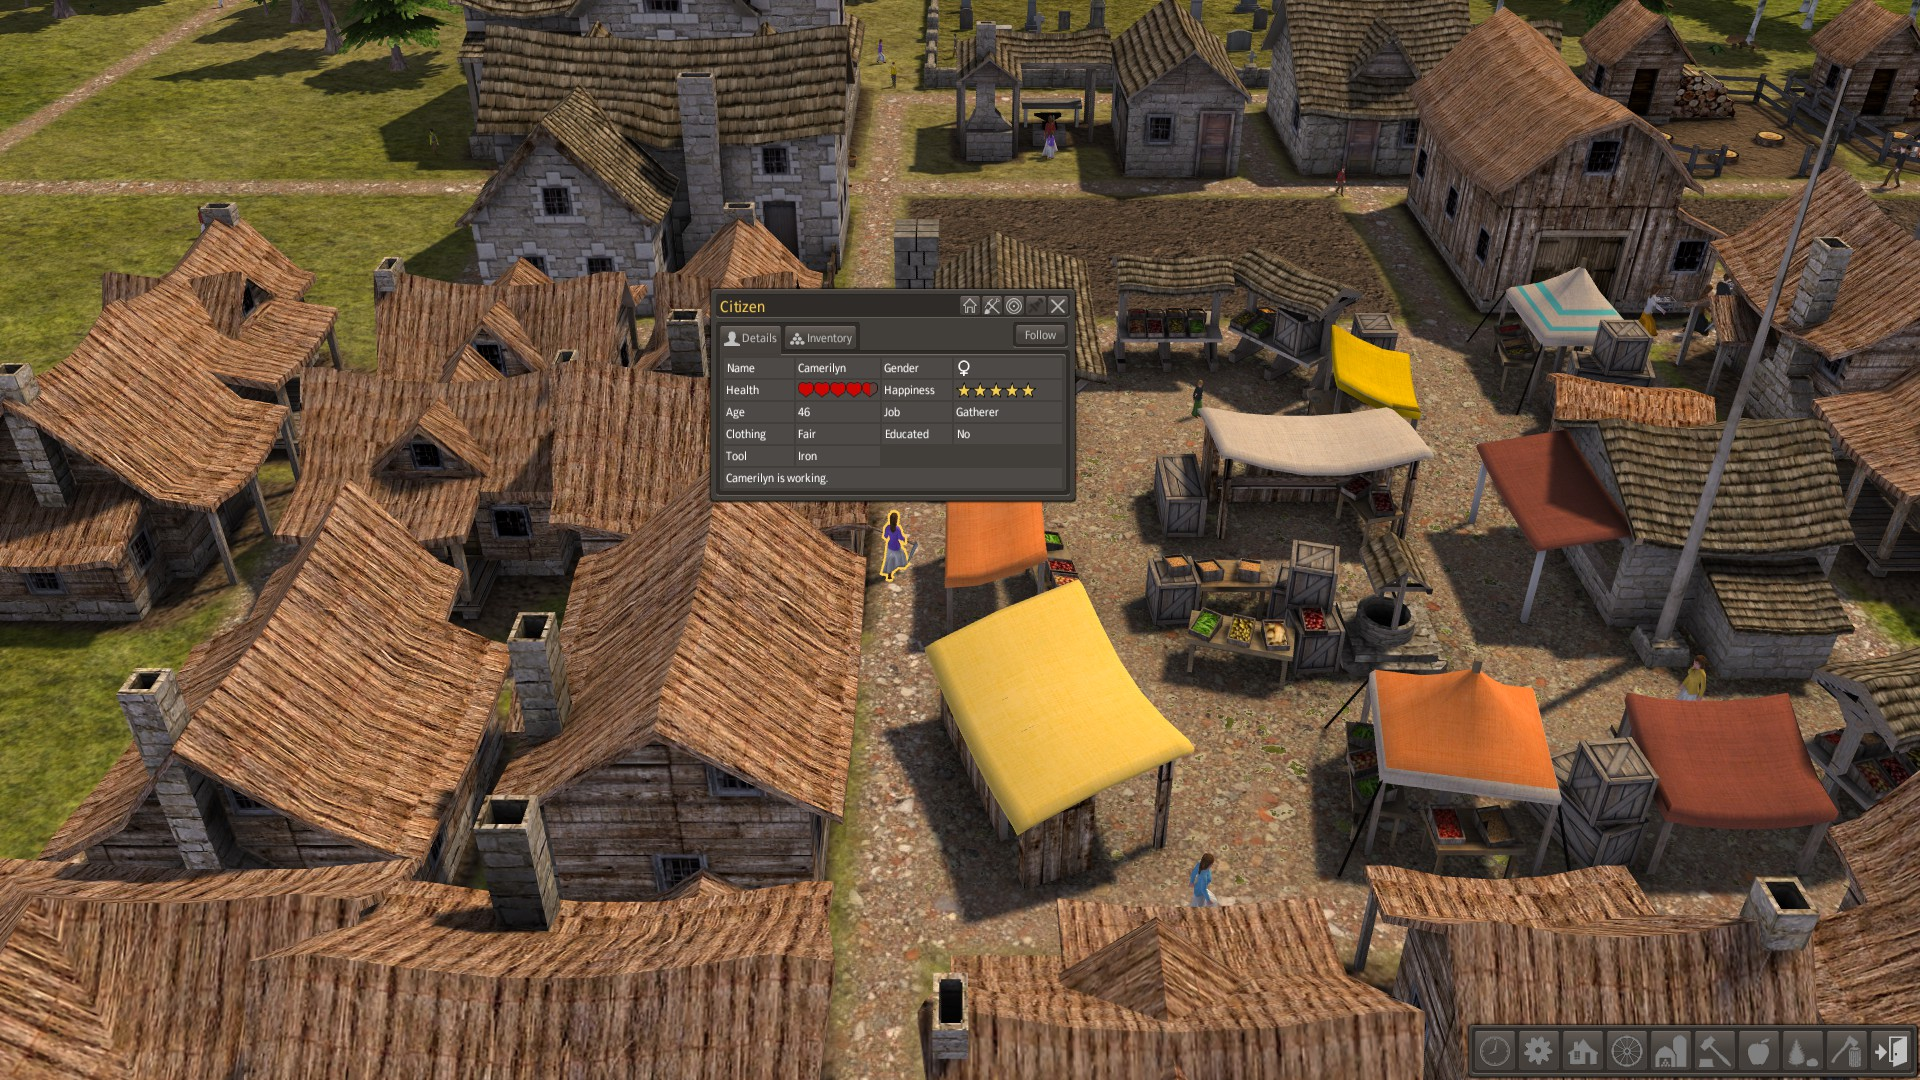 Banished, Citizen - by roman-reviews